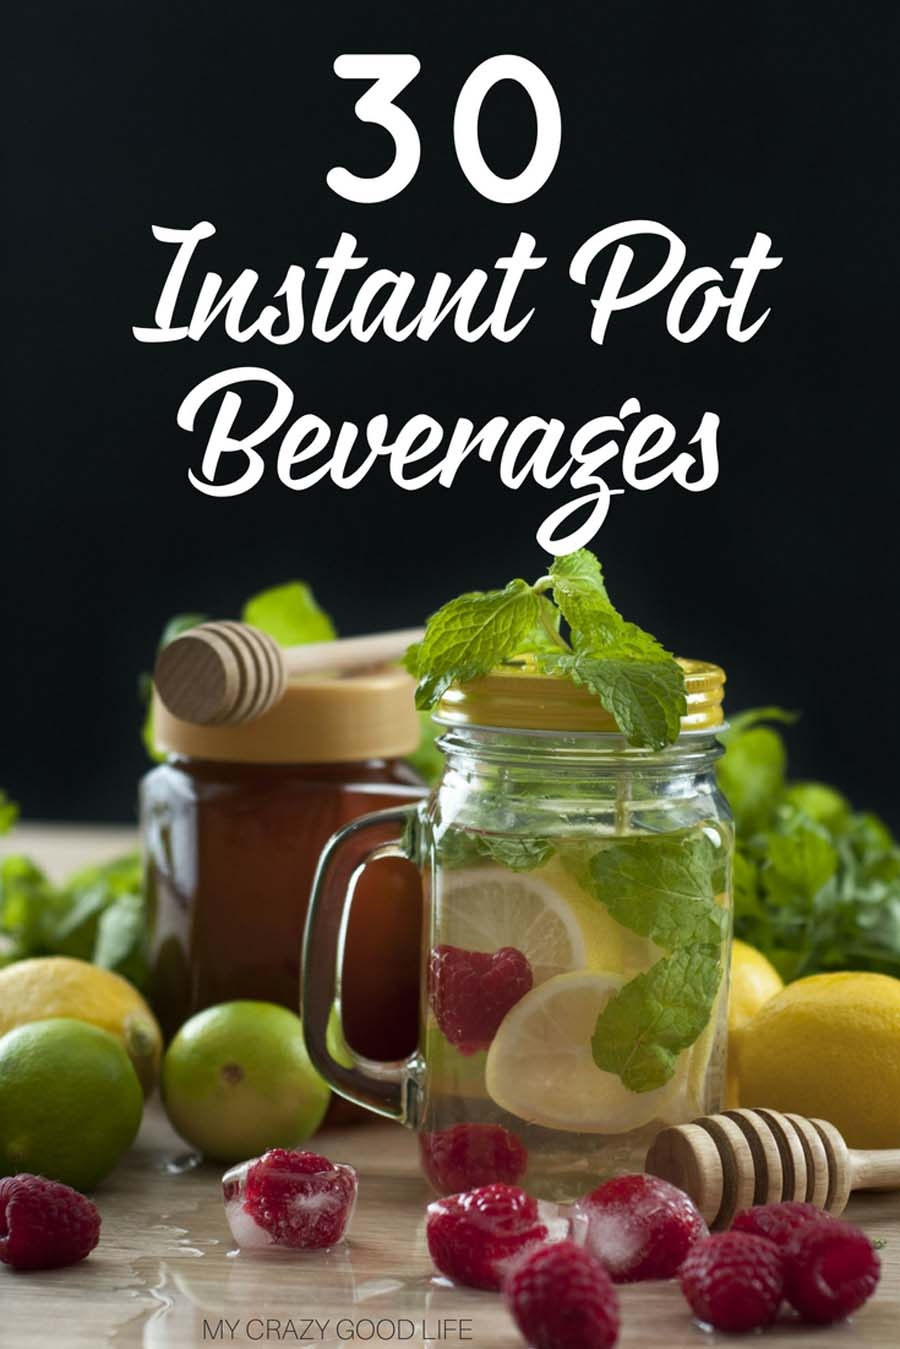 By now I think we all know how wonderful the Instant Pot is, it's a versatile machine that can do almost anything! Did you know that you can make amazing Instant Pot drinks?! There are endless possibilities for Instant Pot beverages that you can make at home. Give some of these tasty pressure cooker drinks a try today! Instant Pot Drink Recipes | Instant Pot Infused Water Recipes #instantpot #drinks #instantpotdrinks #pressurecooker #recipes